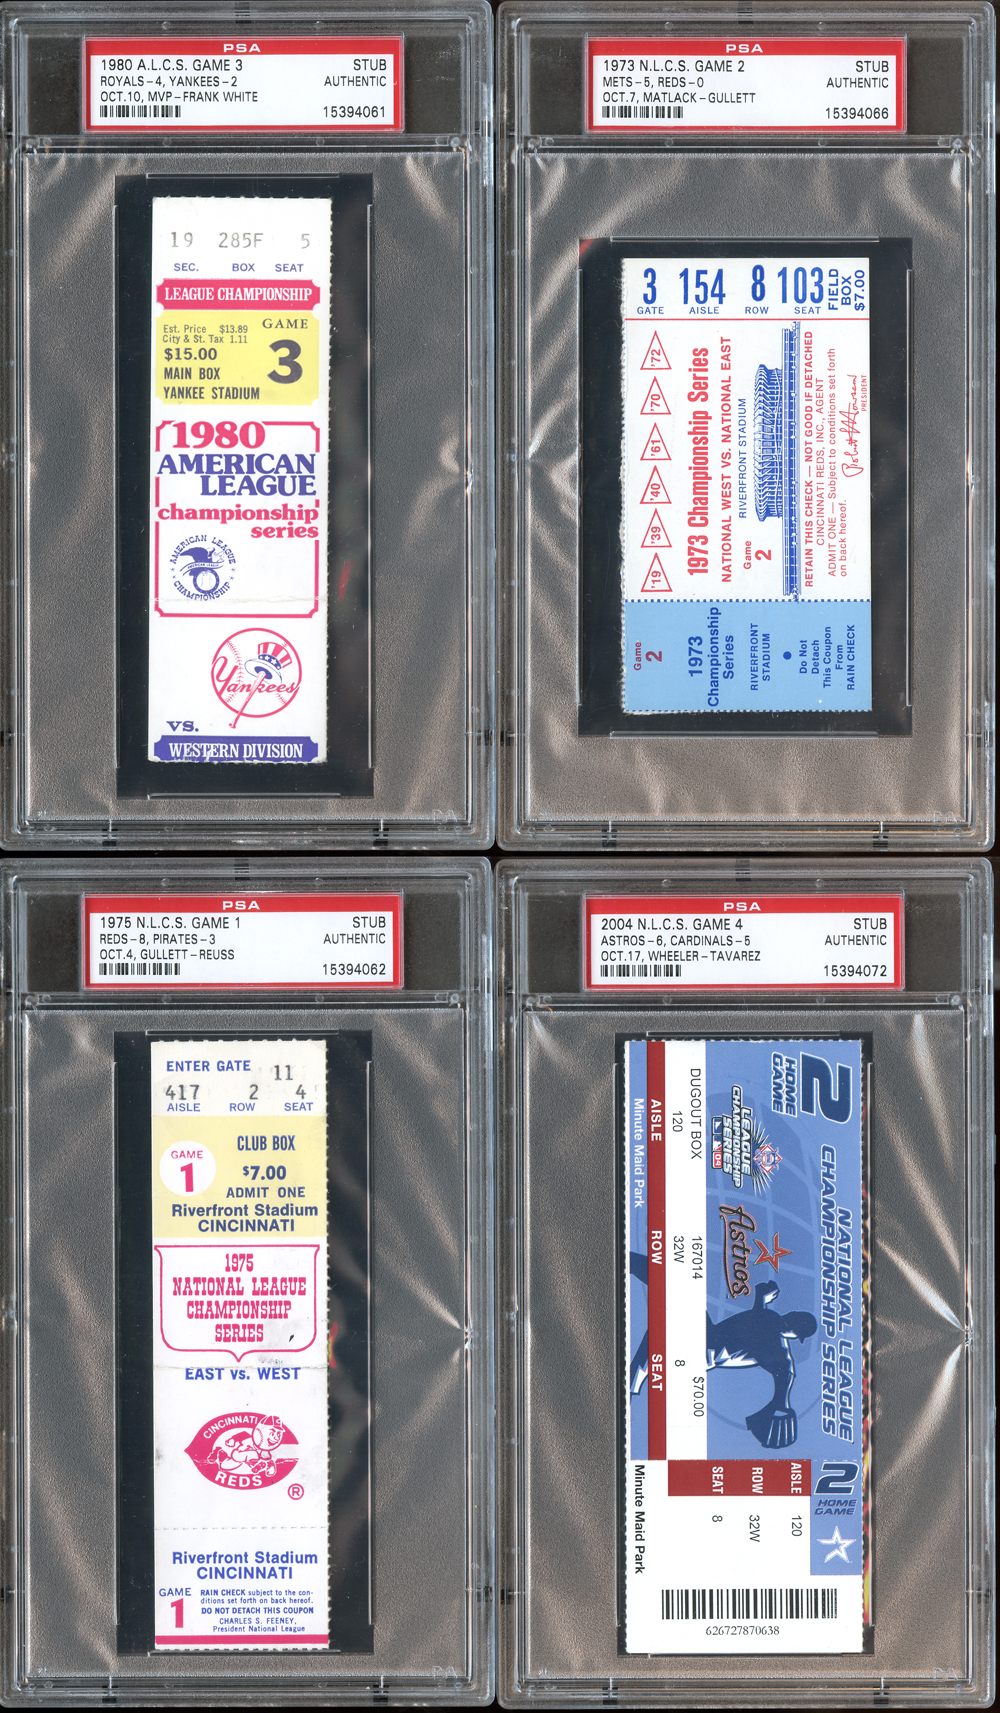 lot detail 1973 2004 mlb playoff ticket stub group of 4 plus nolan ryan 6th no hitter full. Black Bedroom Furniture Sets. Home Design Ideas